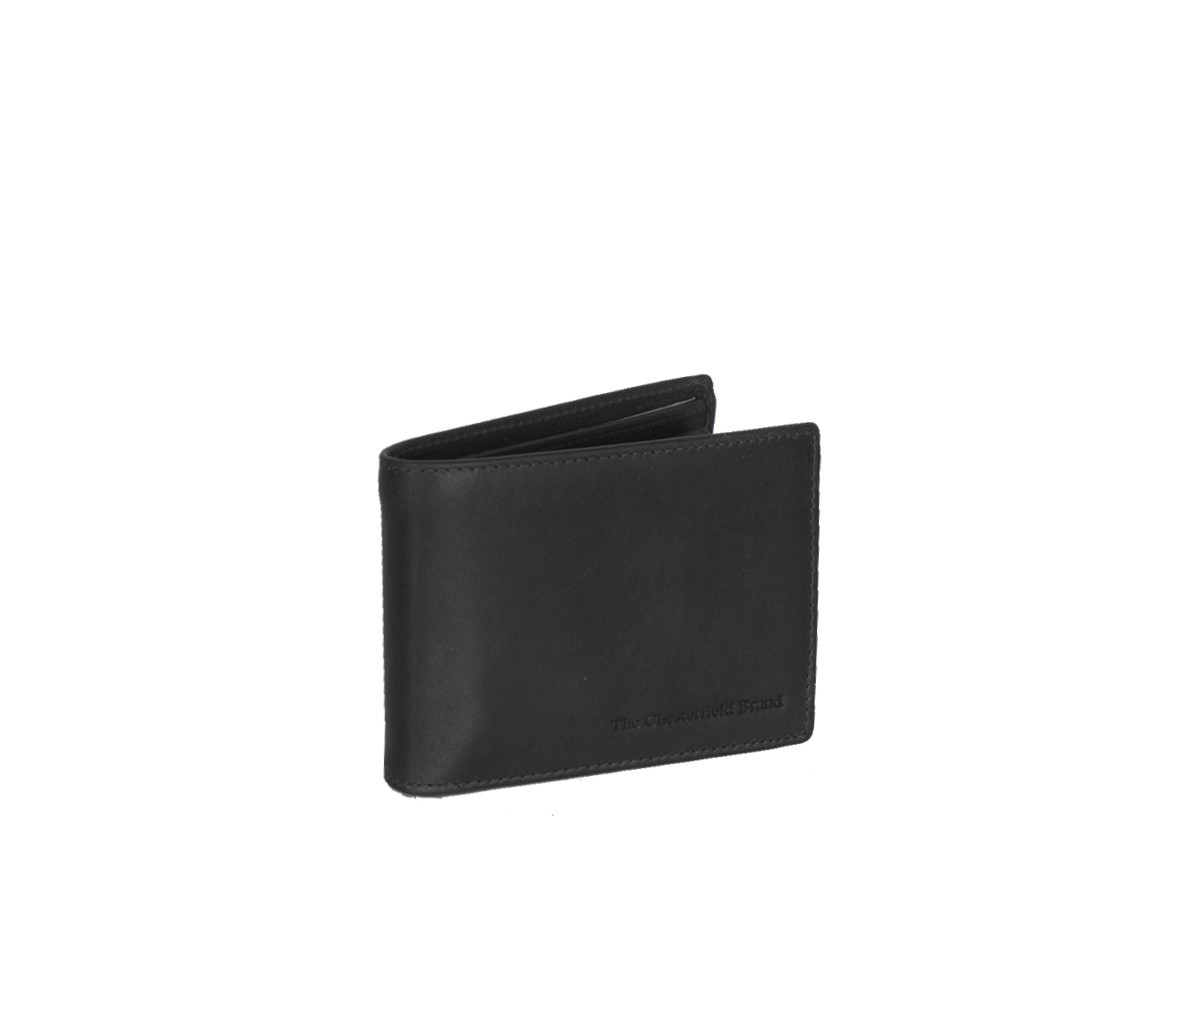 Chesterfield Billfold Breed 'Marvin' C08.0406 Zwart